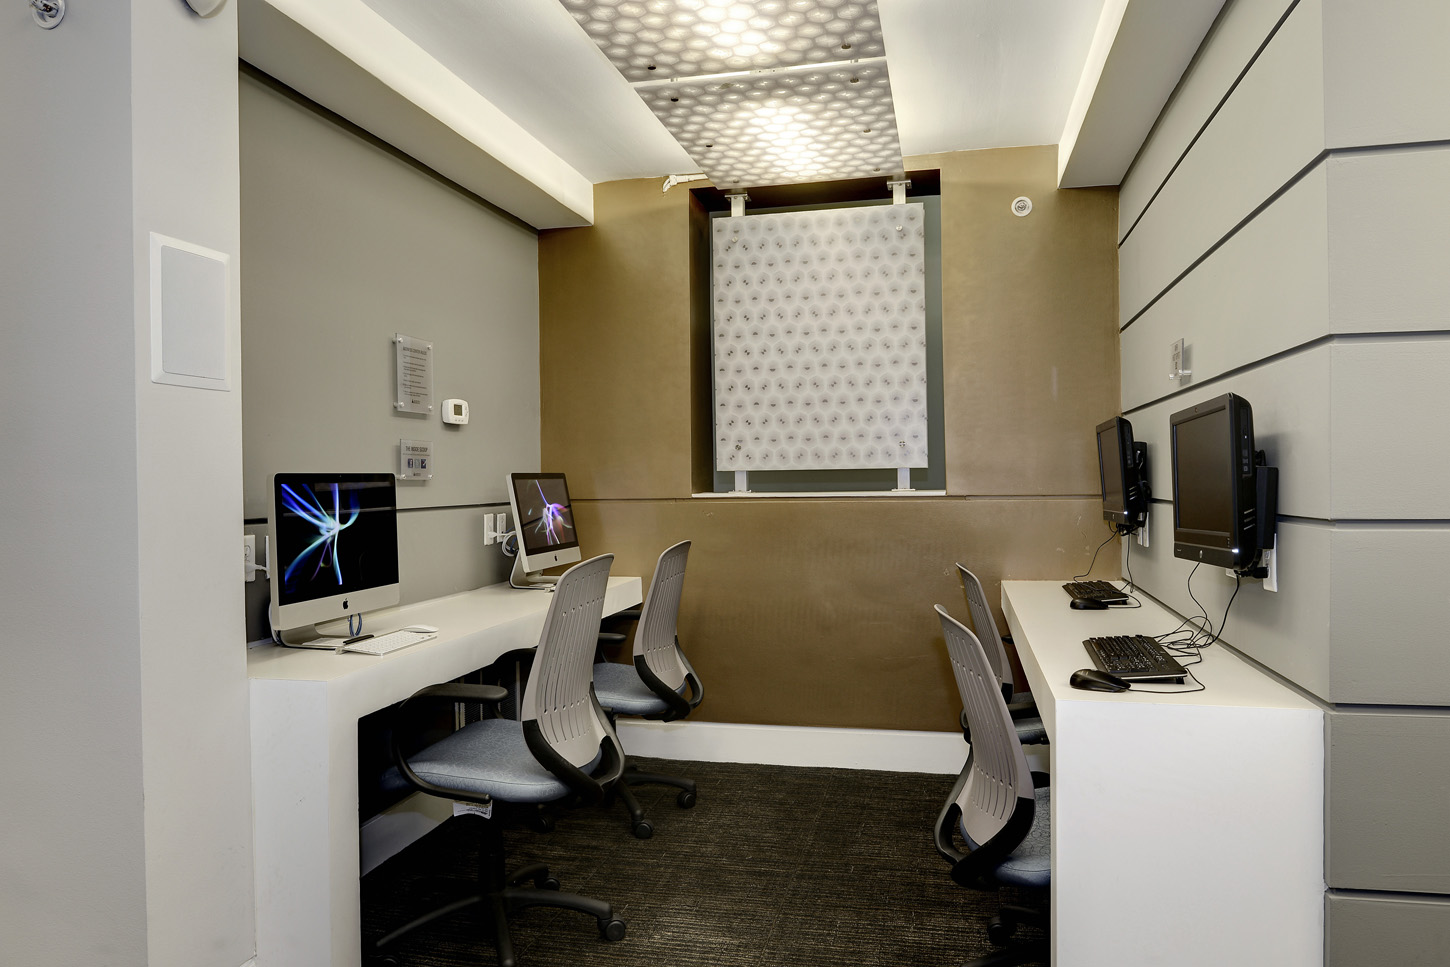 Clubroom nook with iMac and PC computer stations